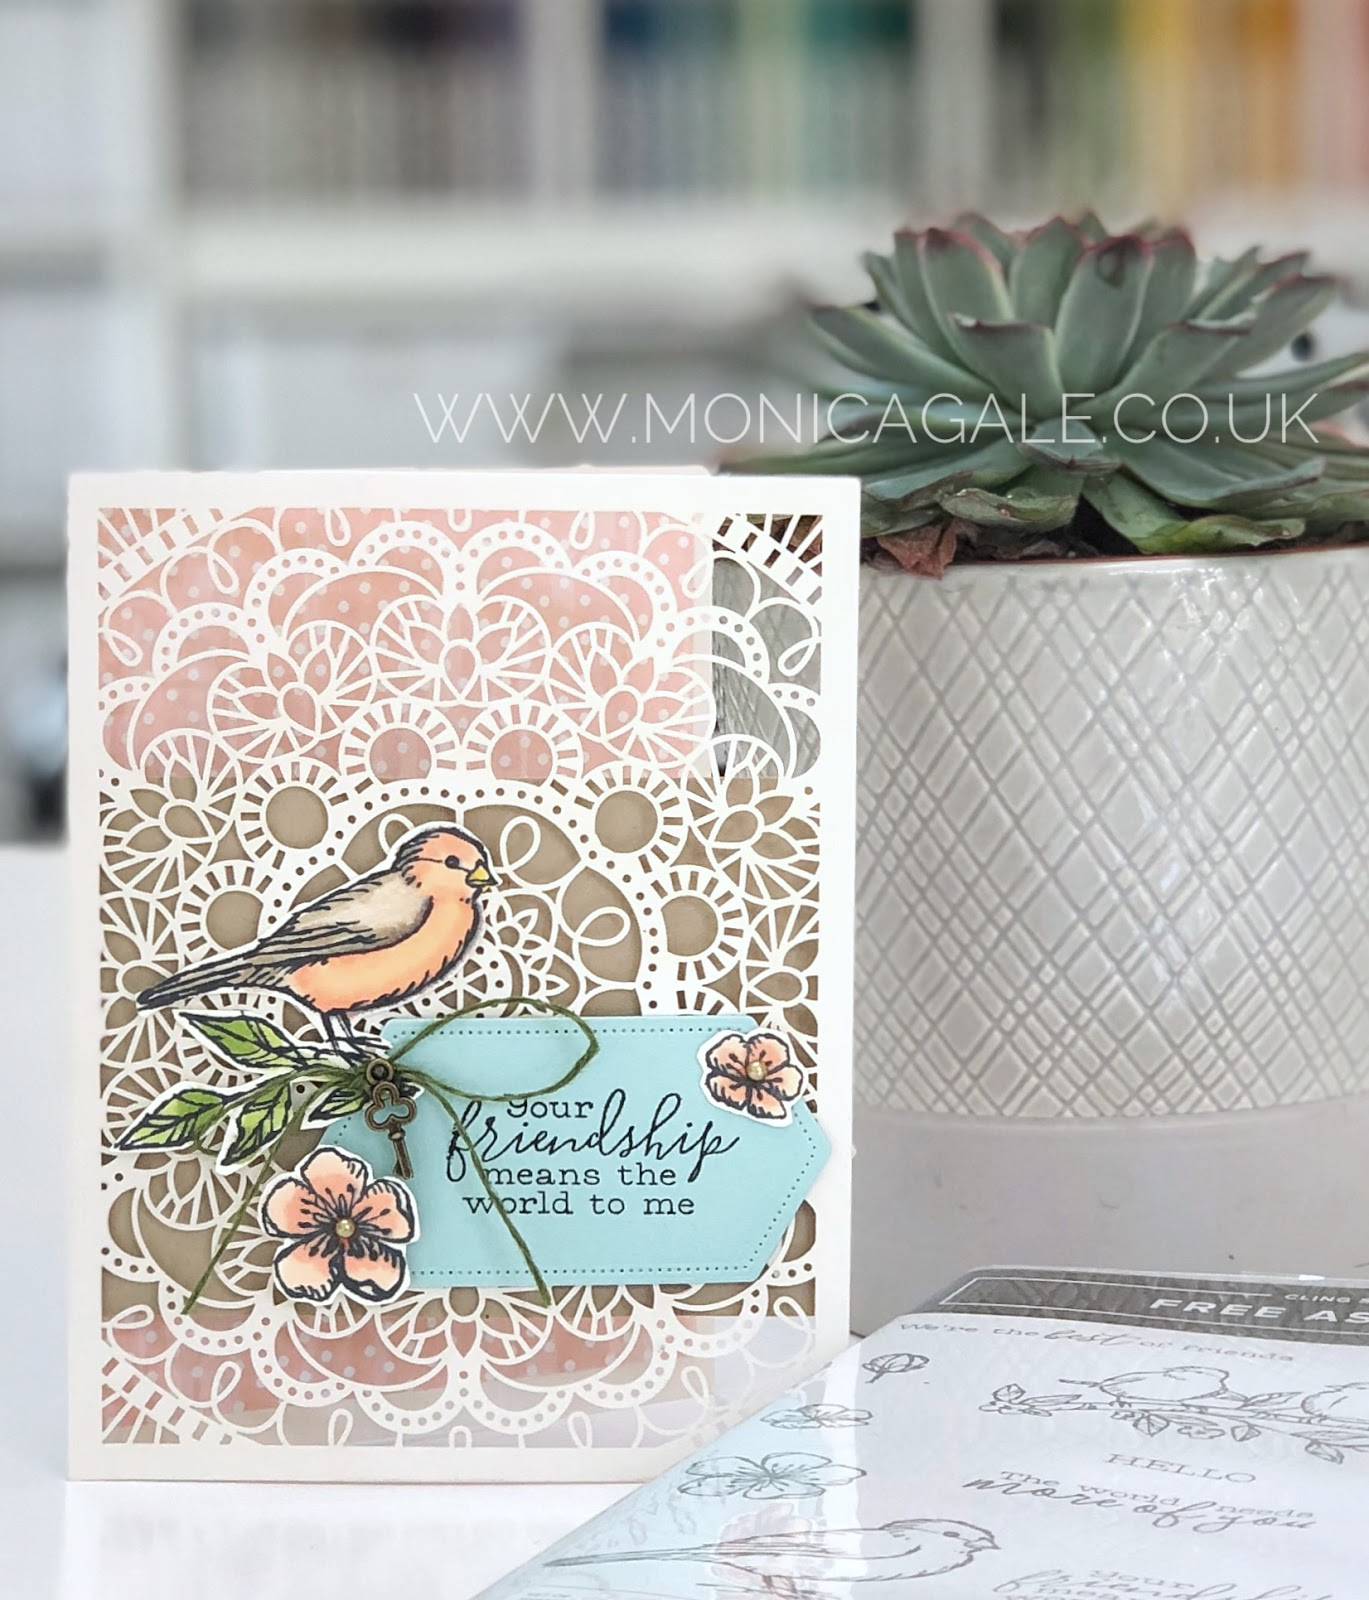 Stampin' Up! Bird Ballad stamps were used for this beautiful handmade card